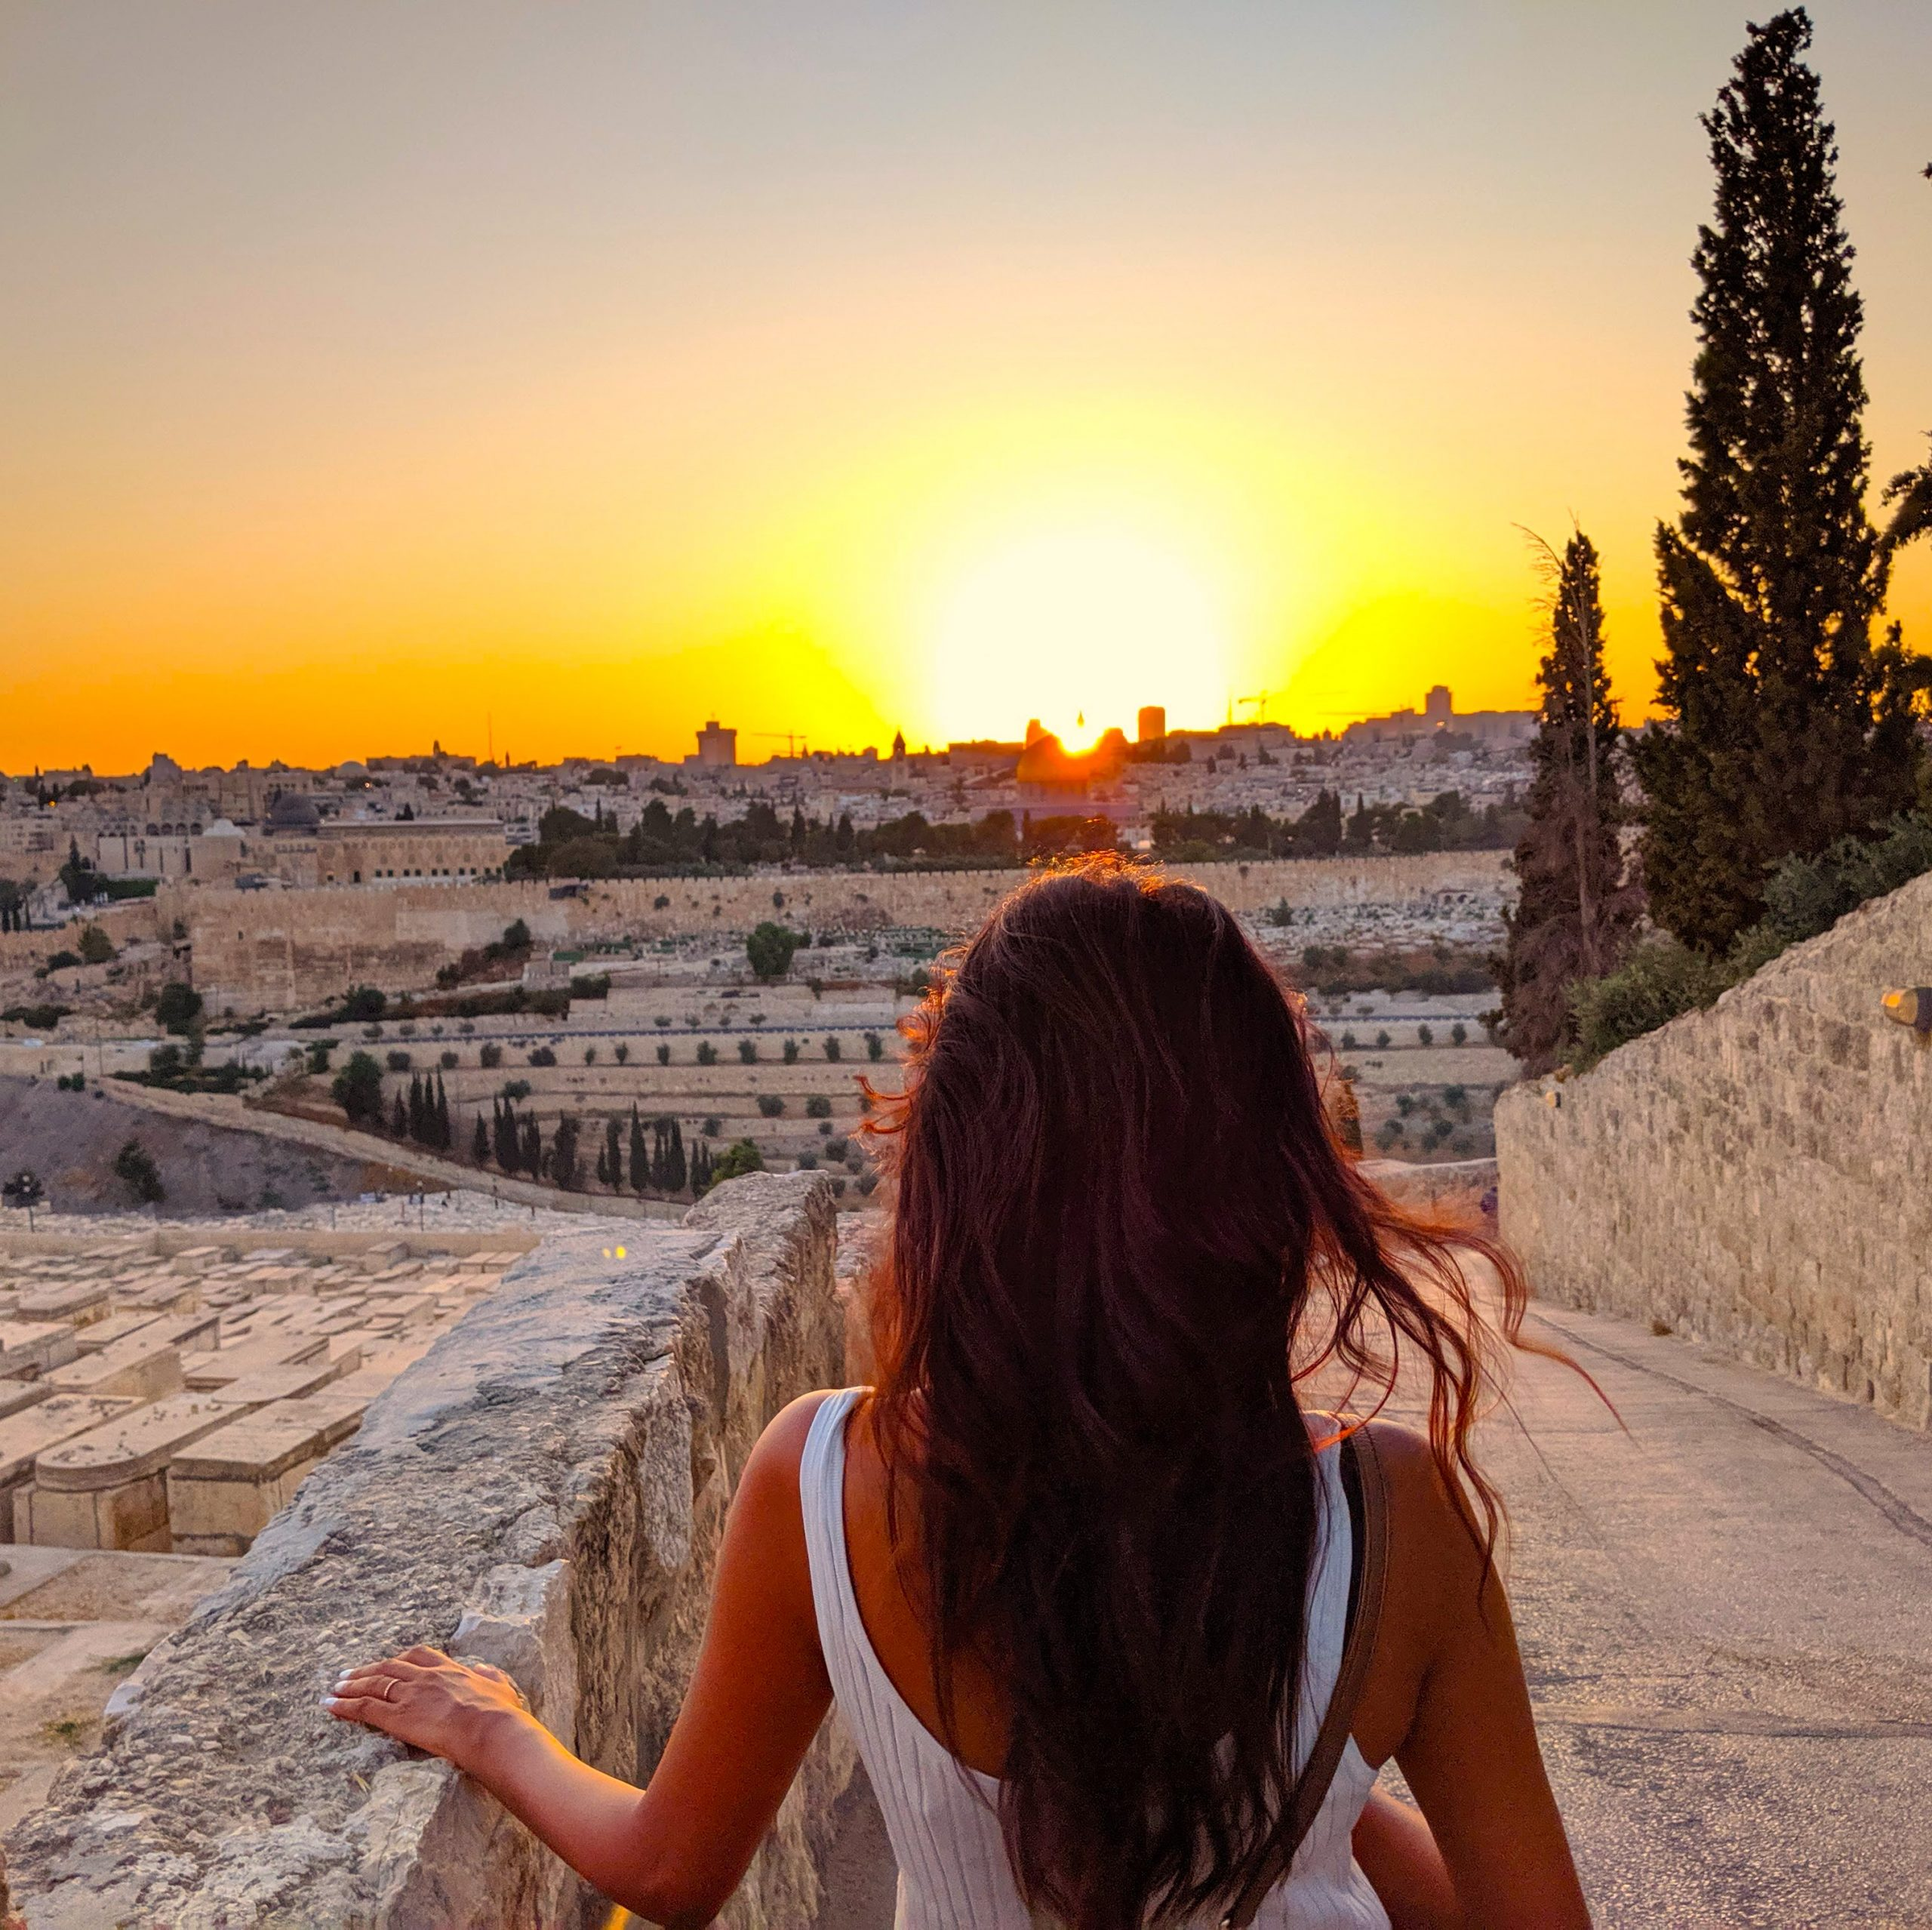 Woman looking at the sun set over an old city